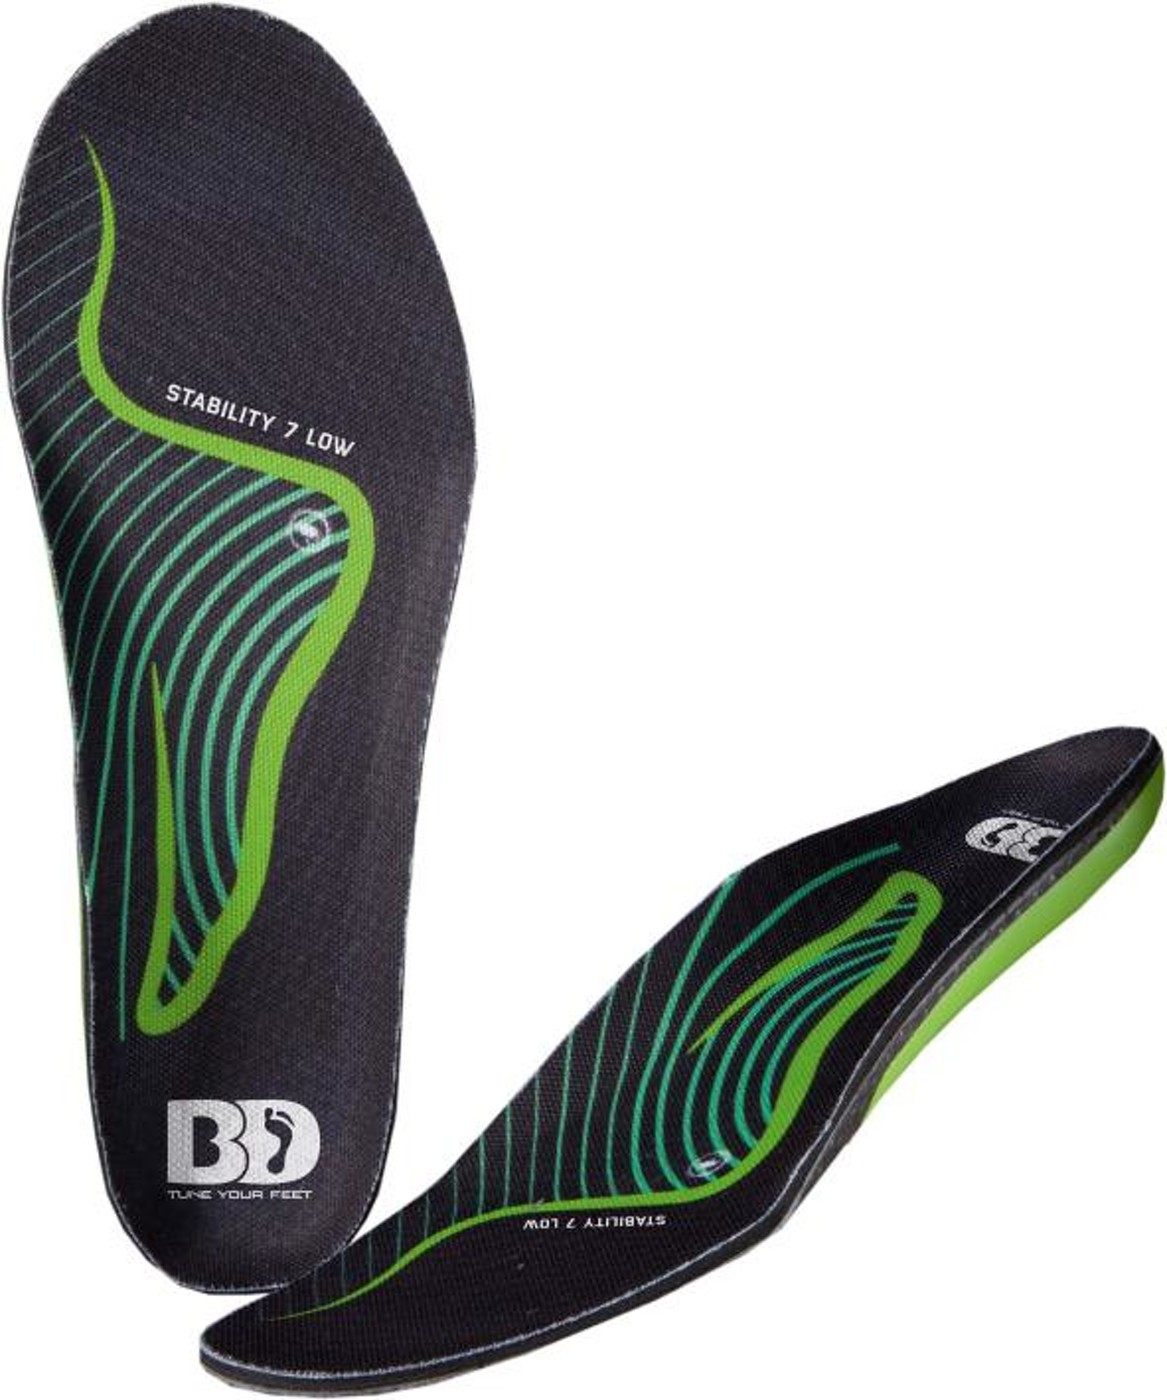 BOOTDOC PST LOW ARCH